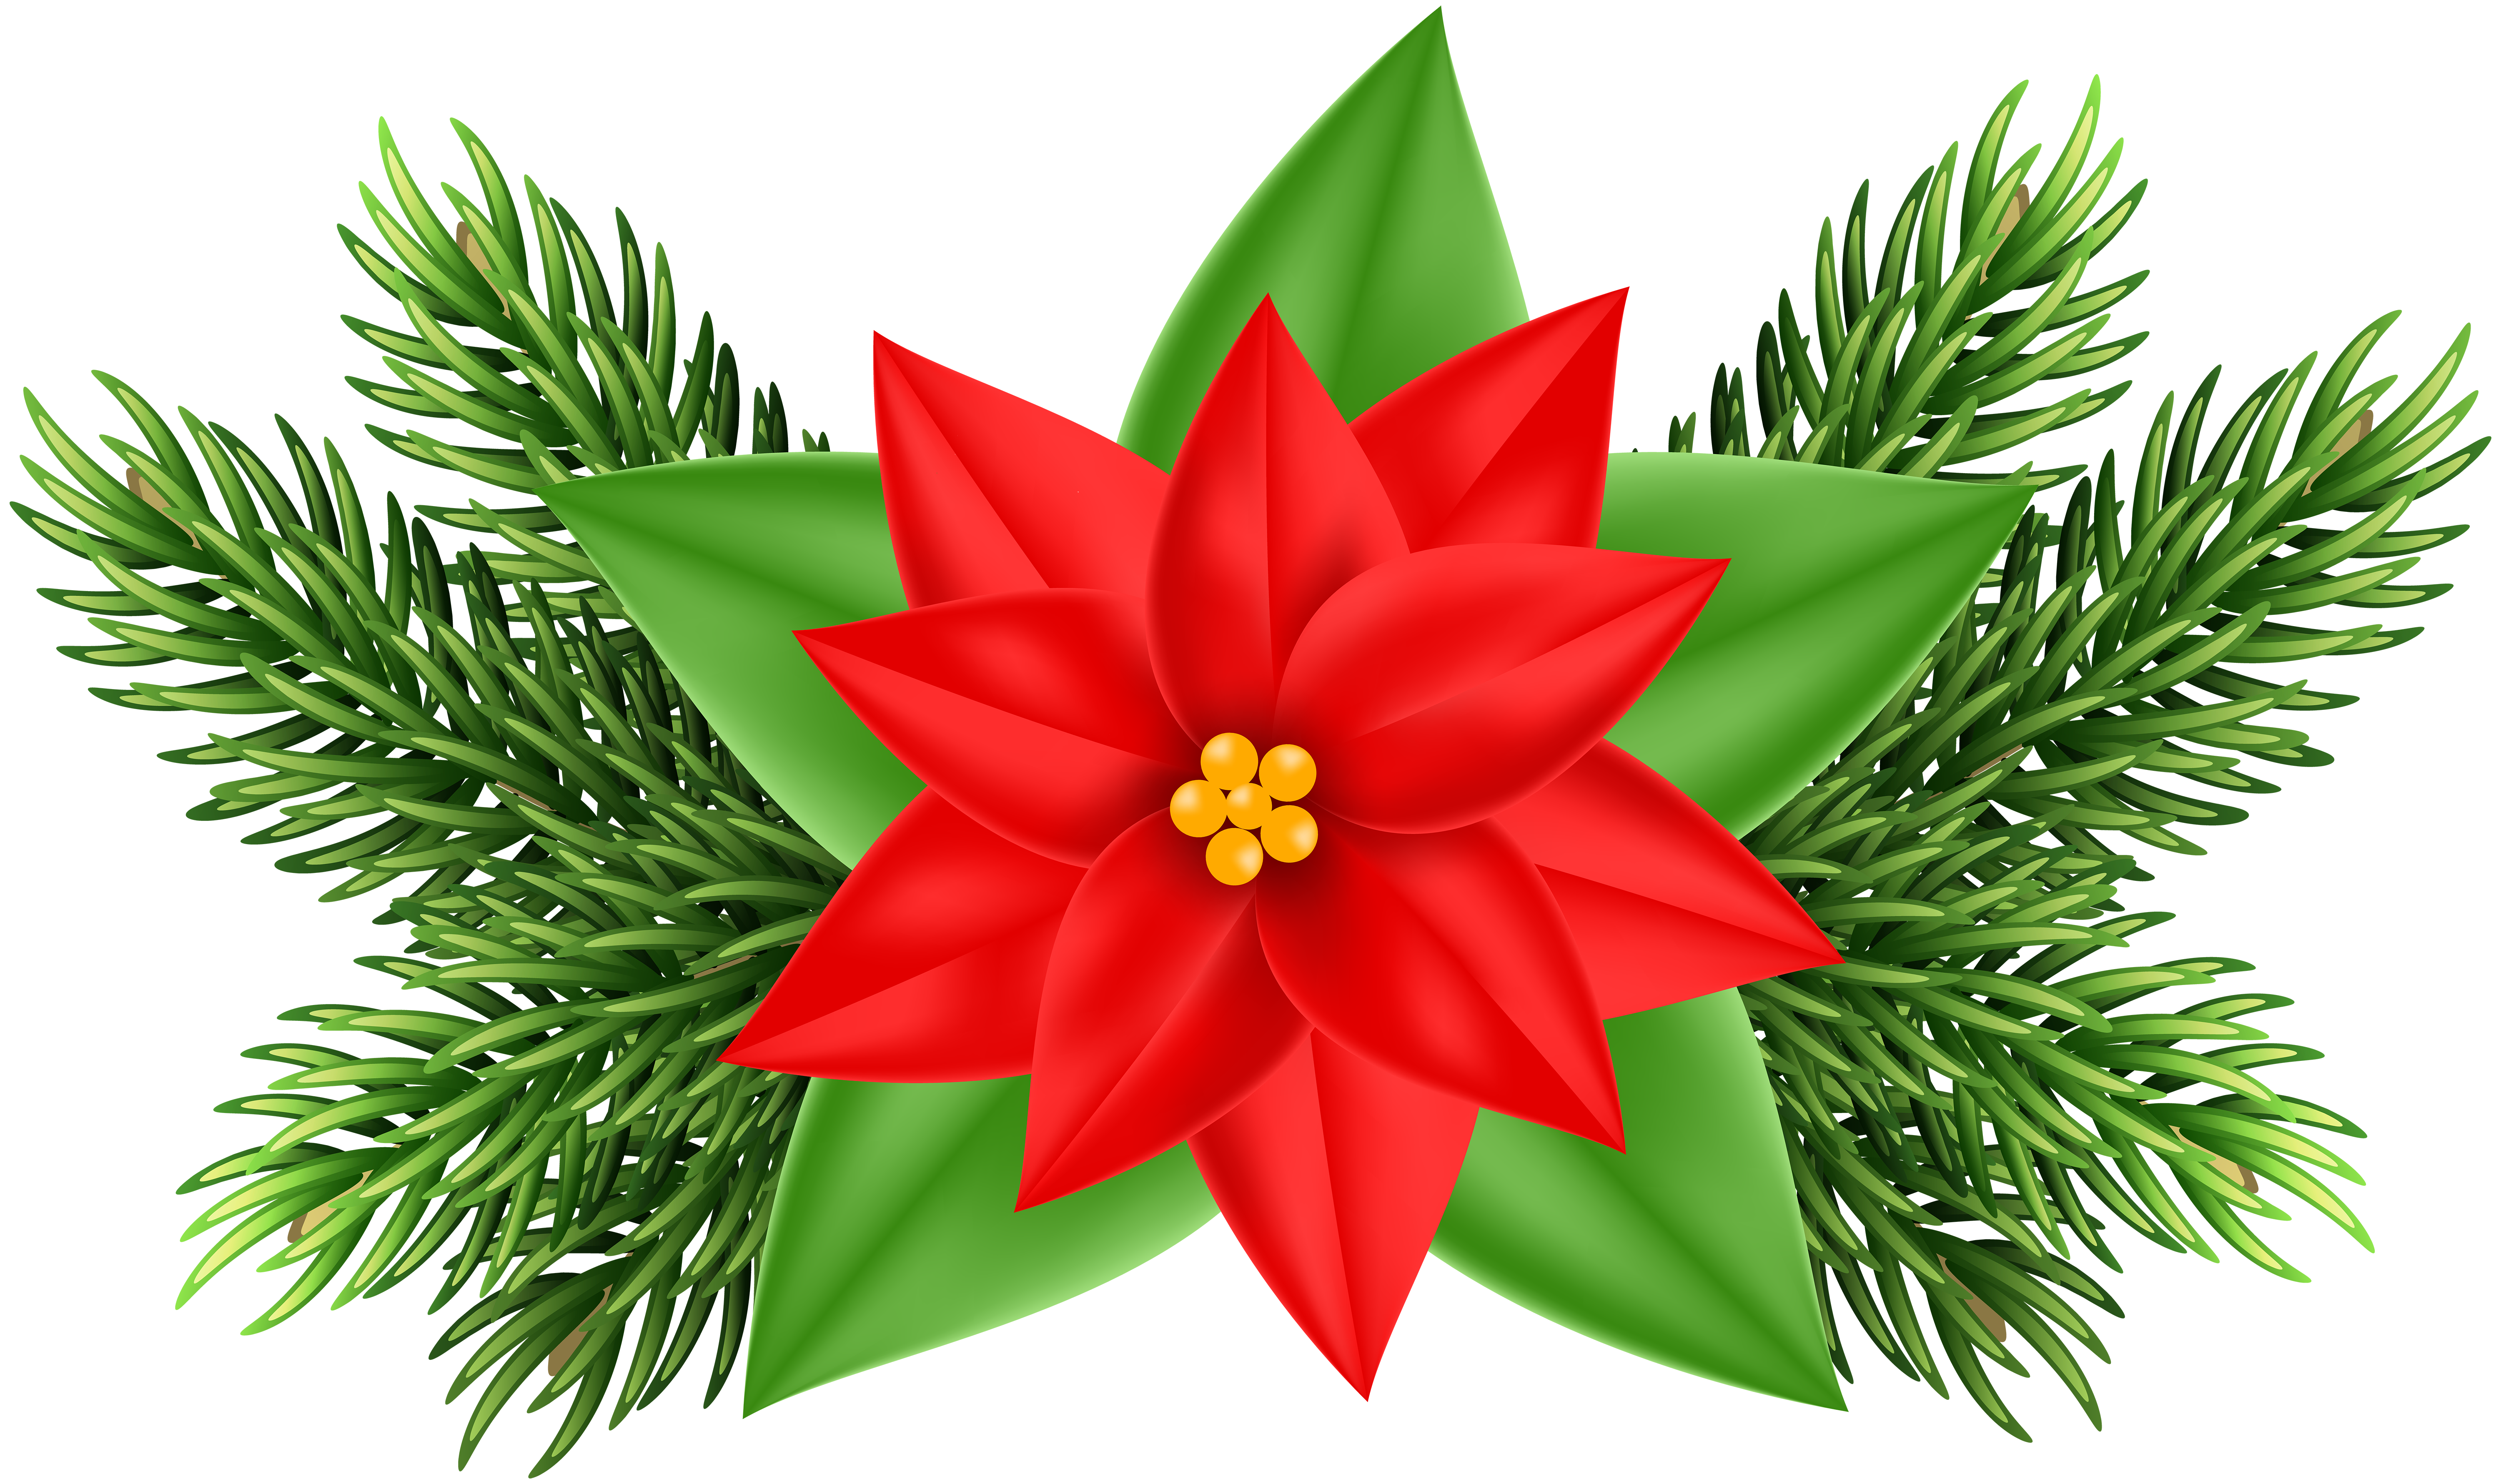 Clipart poinsettia flower image library library Clipart Poinsettia Flower at GetDrawings.com | Free for personal use ... image library library